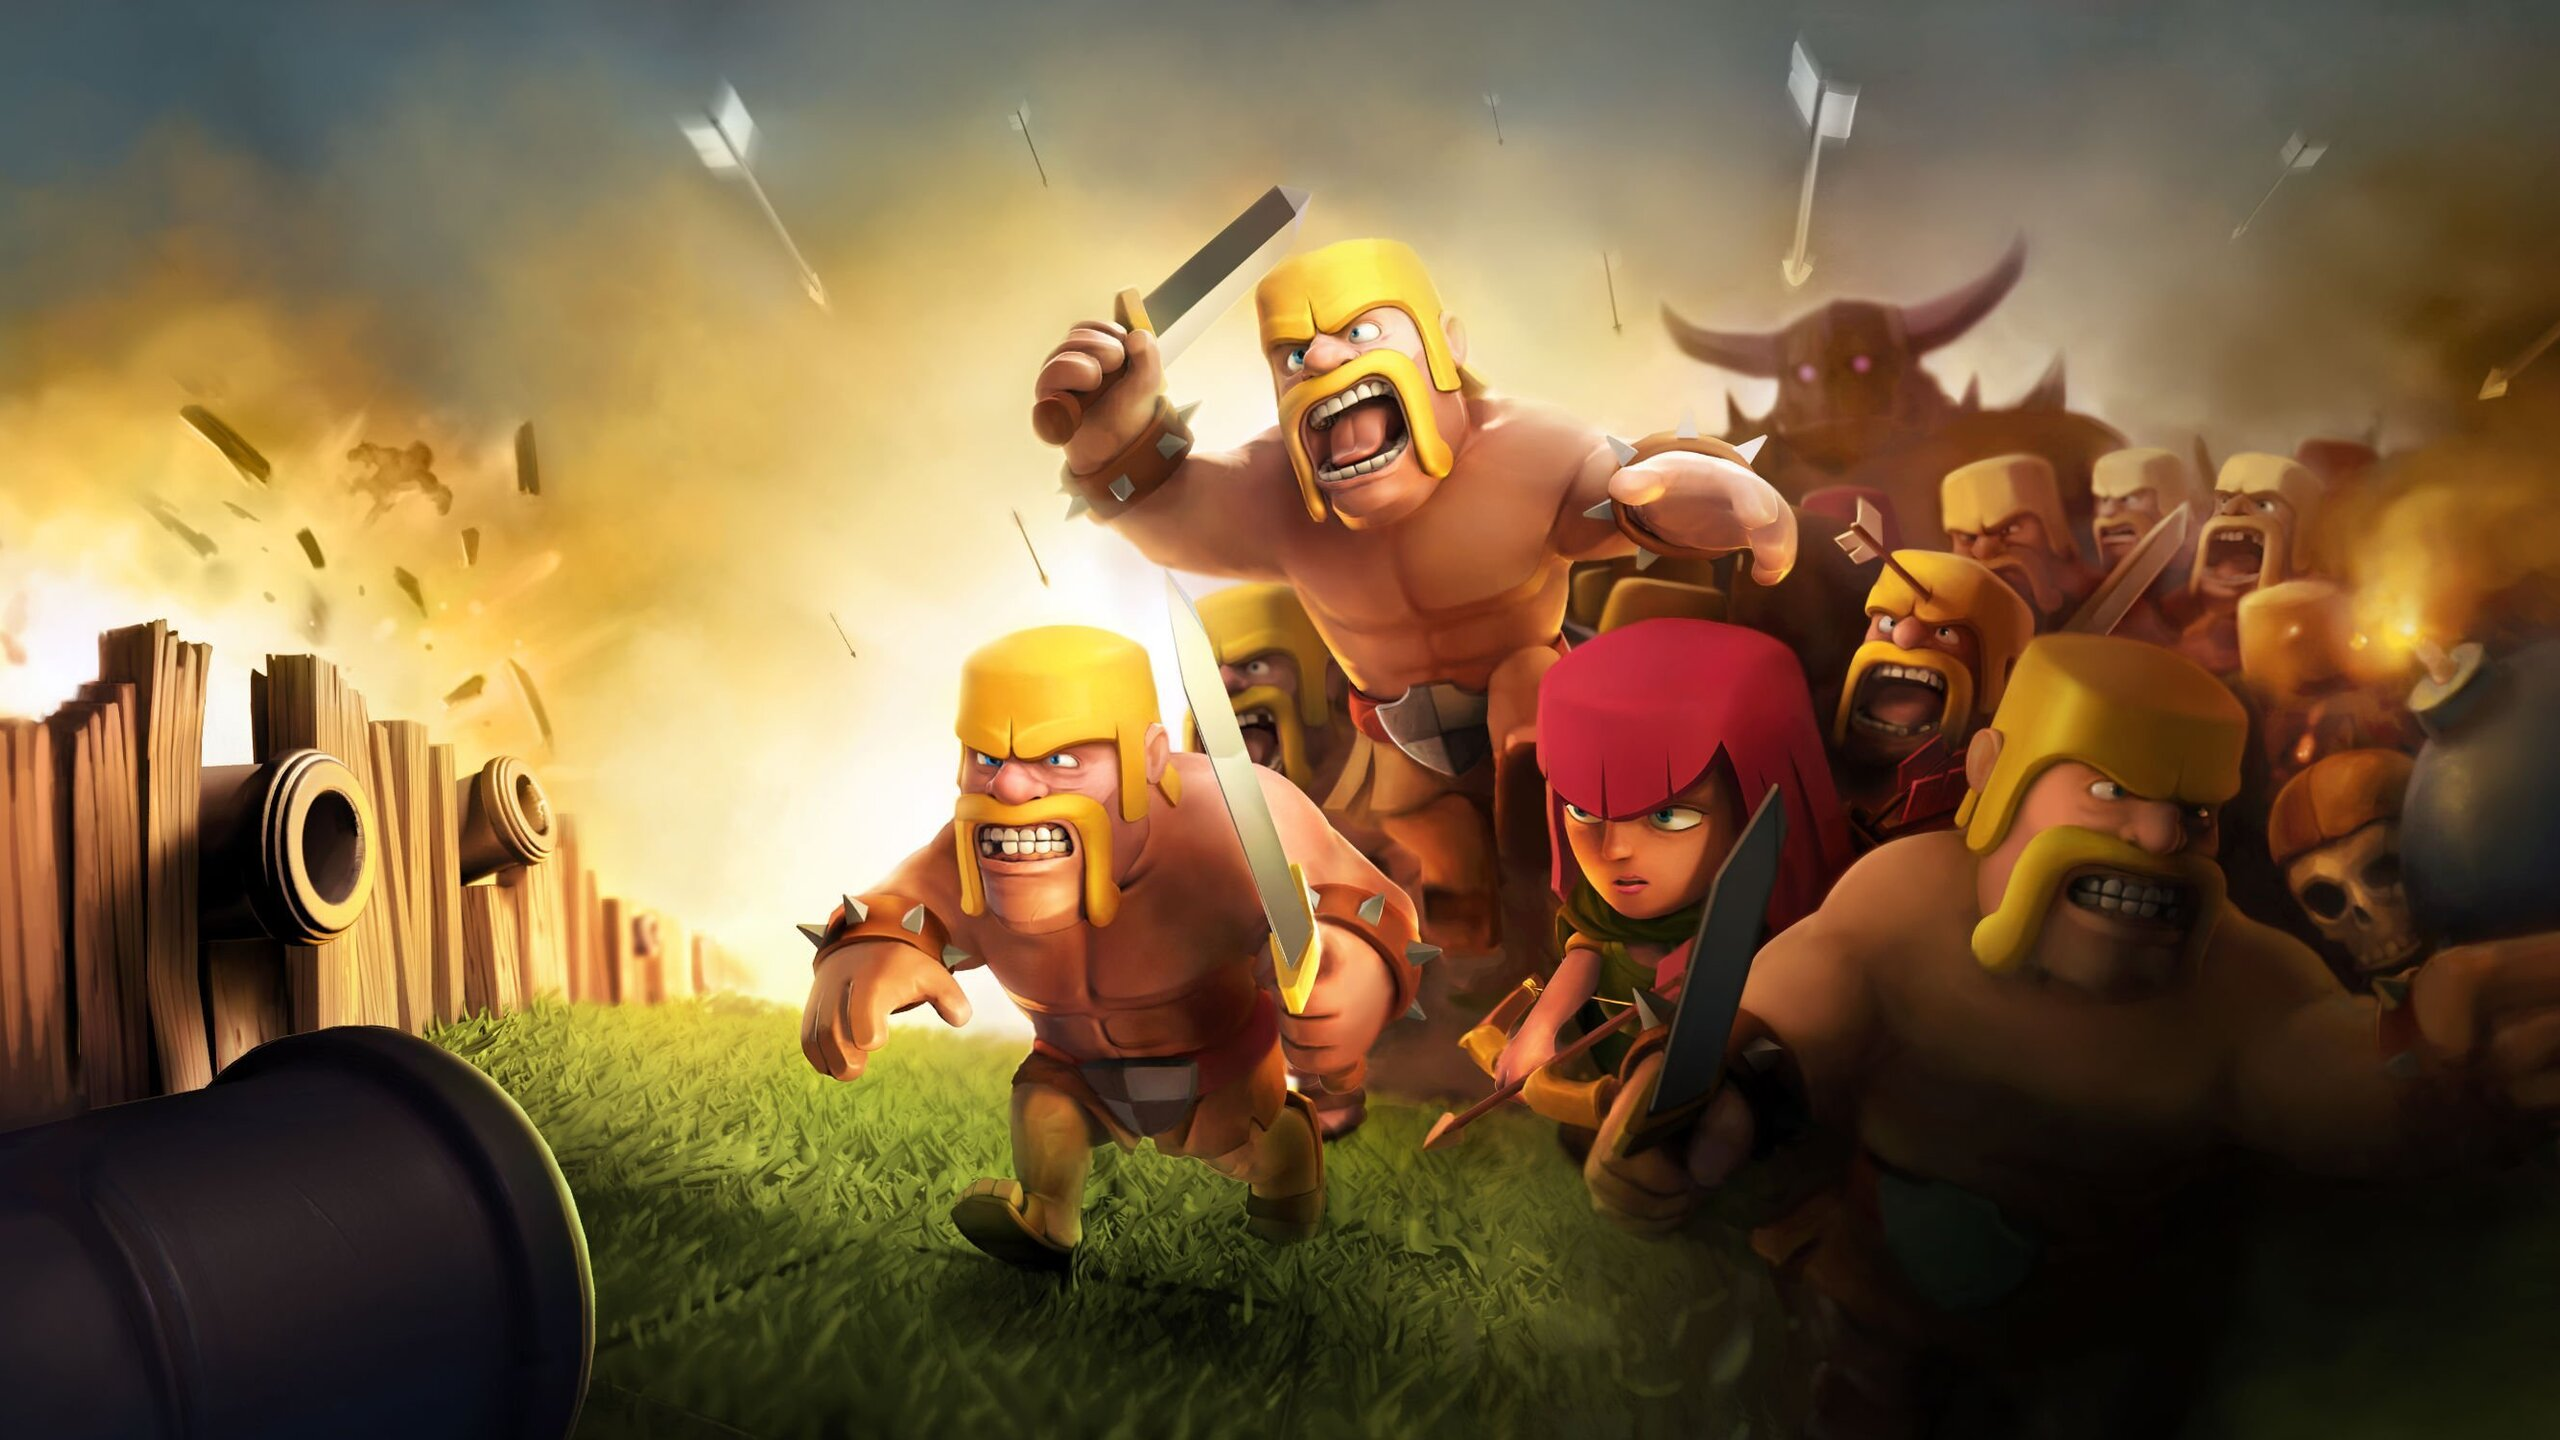 2560x1440 clash of clans hd 1440p resolution hd 4k wallpapers images backgrounds photos and - Clash royale 2560x1440 ...